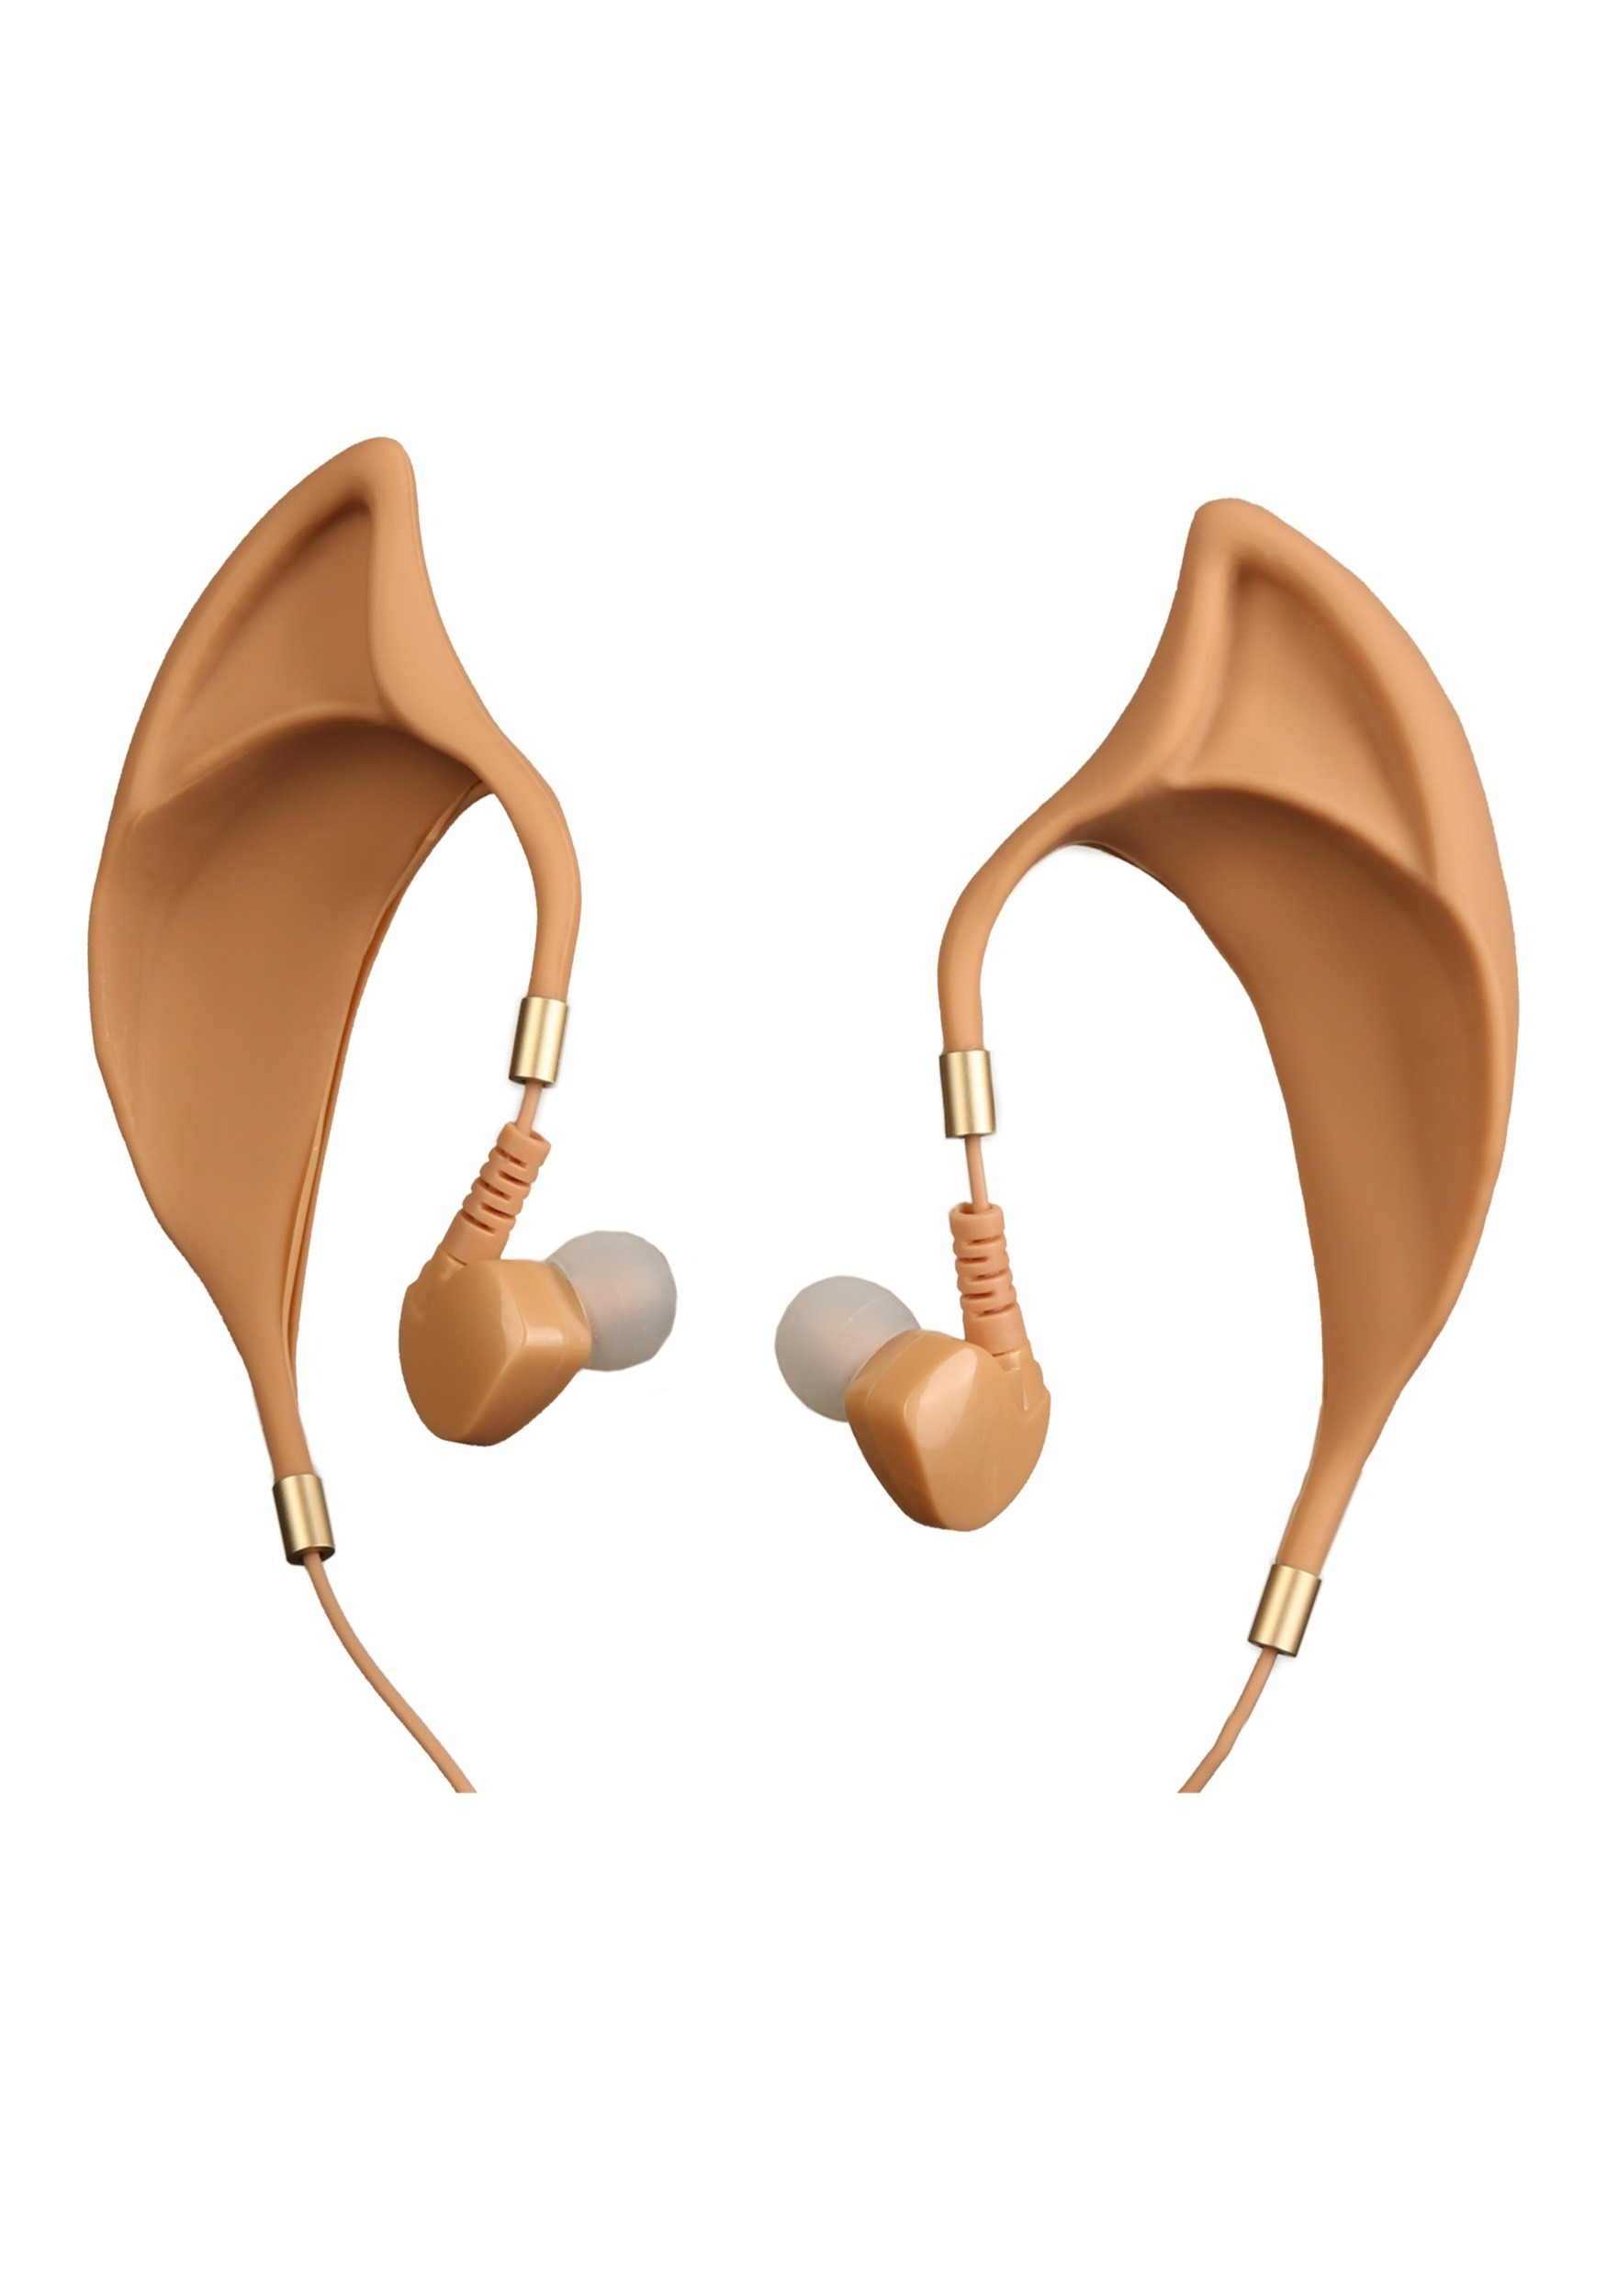 ANOVOS_Vulcan_Star_Trek_Earbuds_with_Inline_Remote